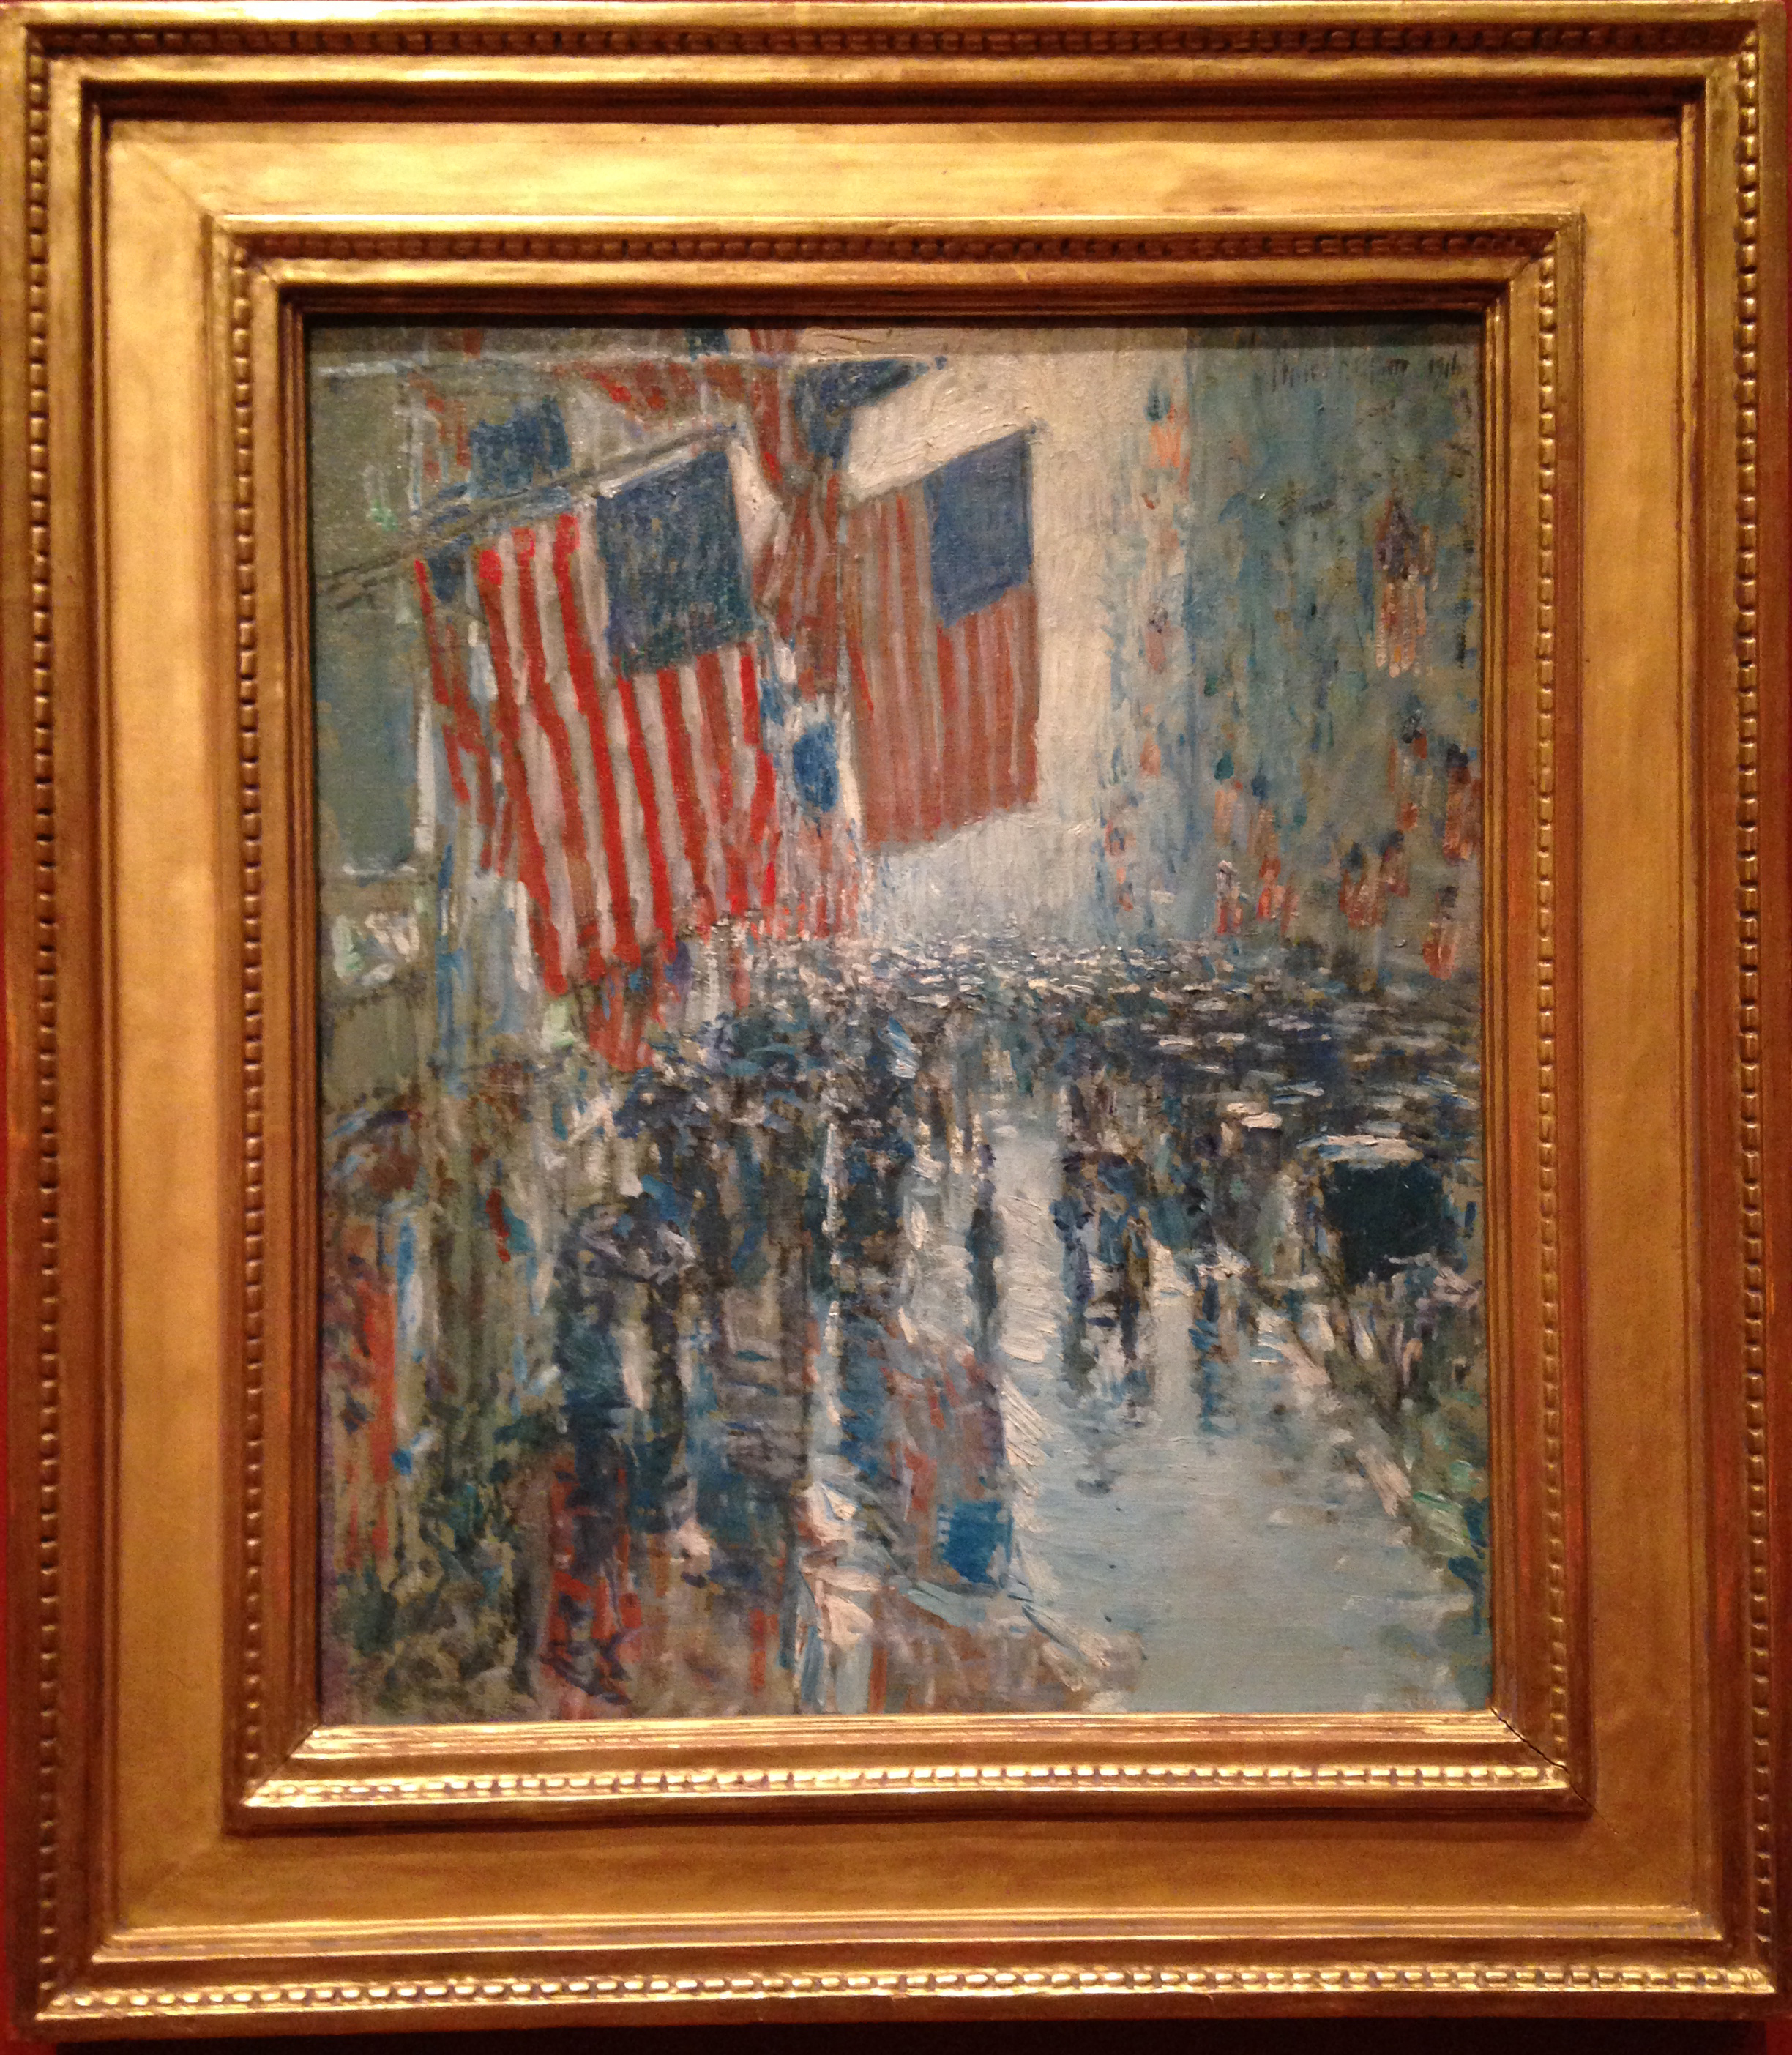 Rainy Day, Fifth Avenue by Childe Hassam